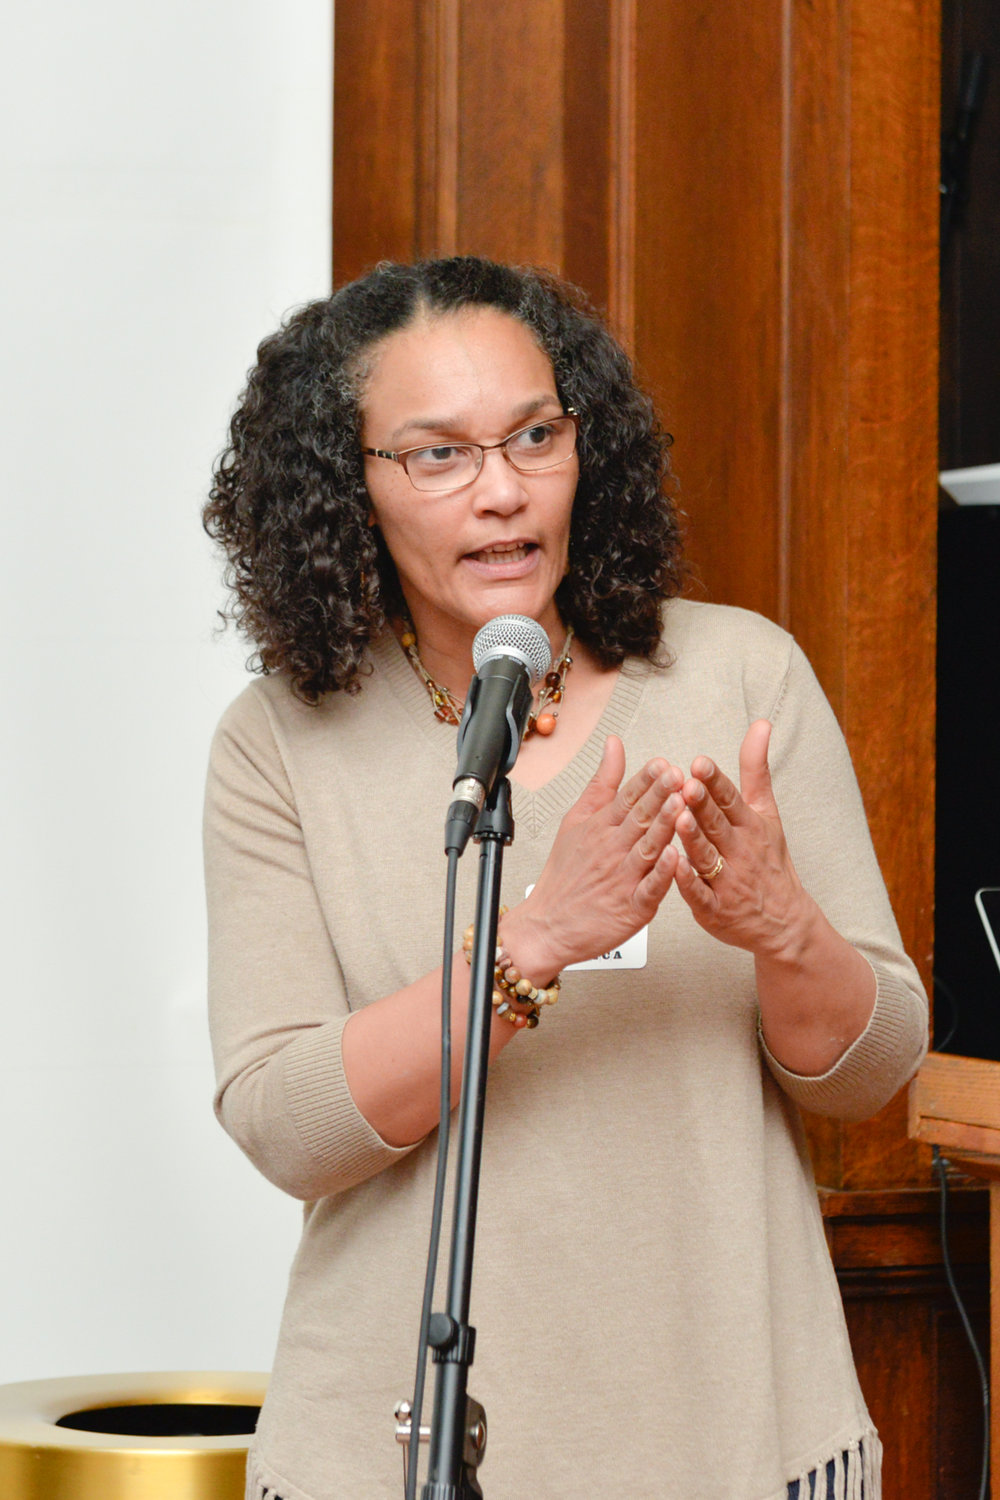 Colette Veasey-Cullors, Associate Dean for Design and Media, Former Department Chair - Photography